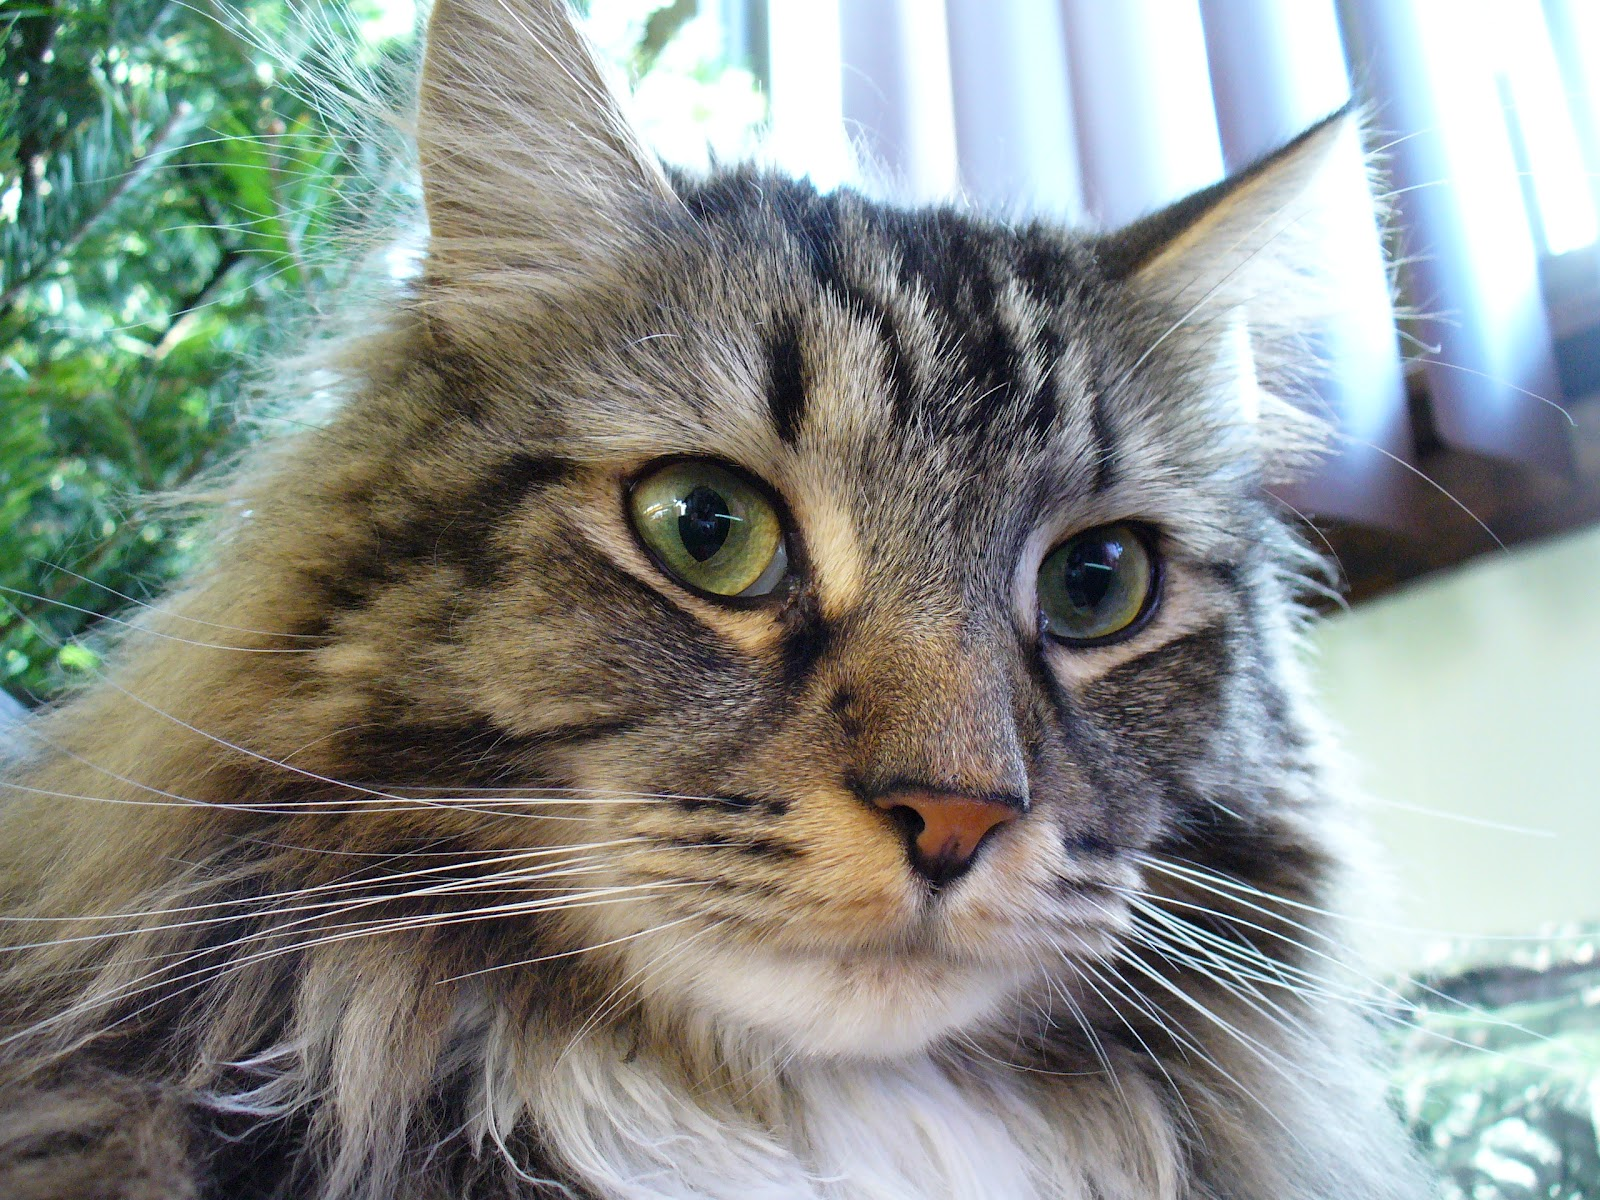 Are the Maine Coons independent?